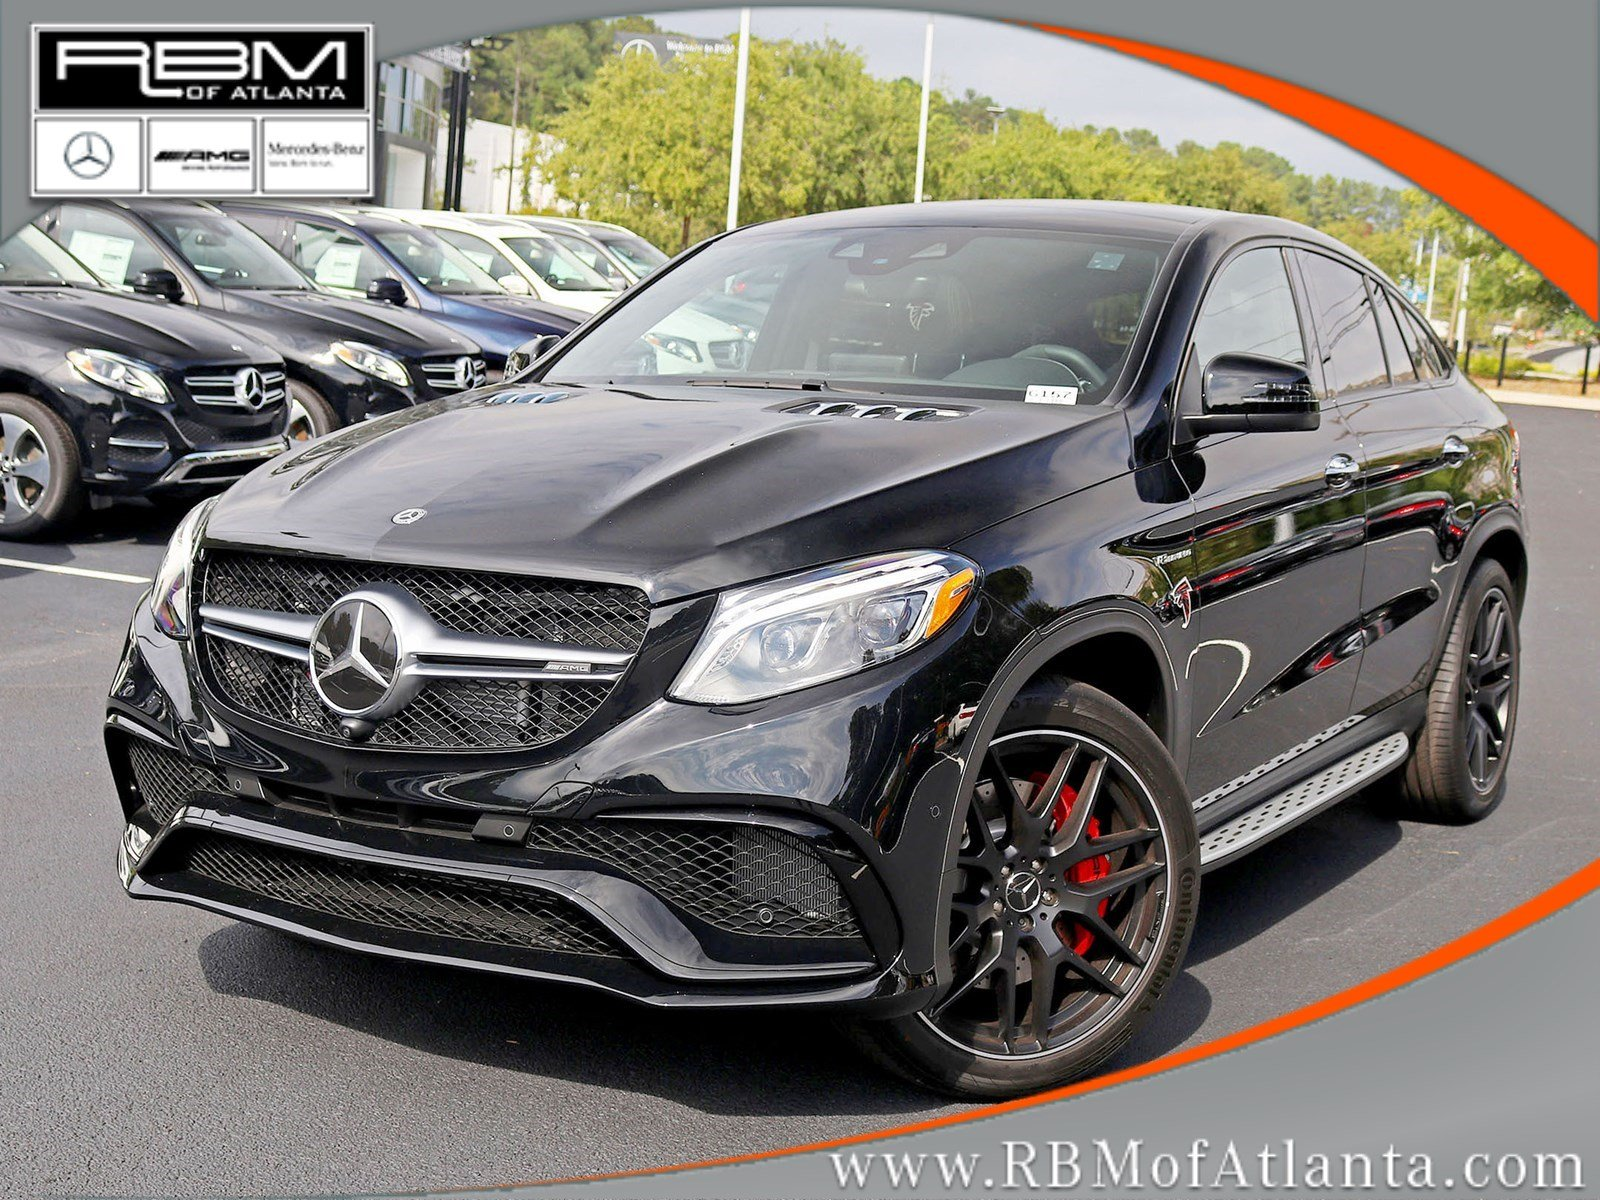 New 2018 Mercedes Benz GLE AMG GLE 63 S Coupe Coupe in Atlanta